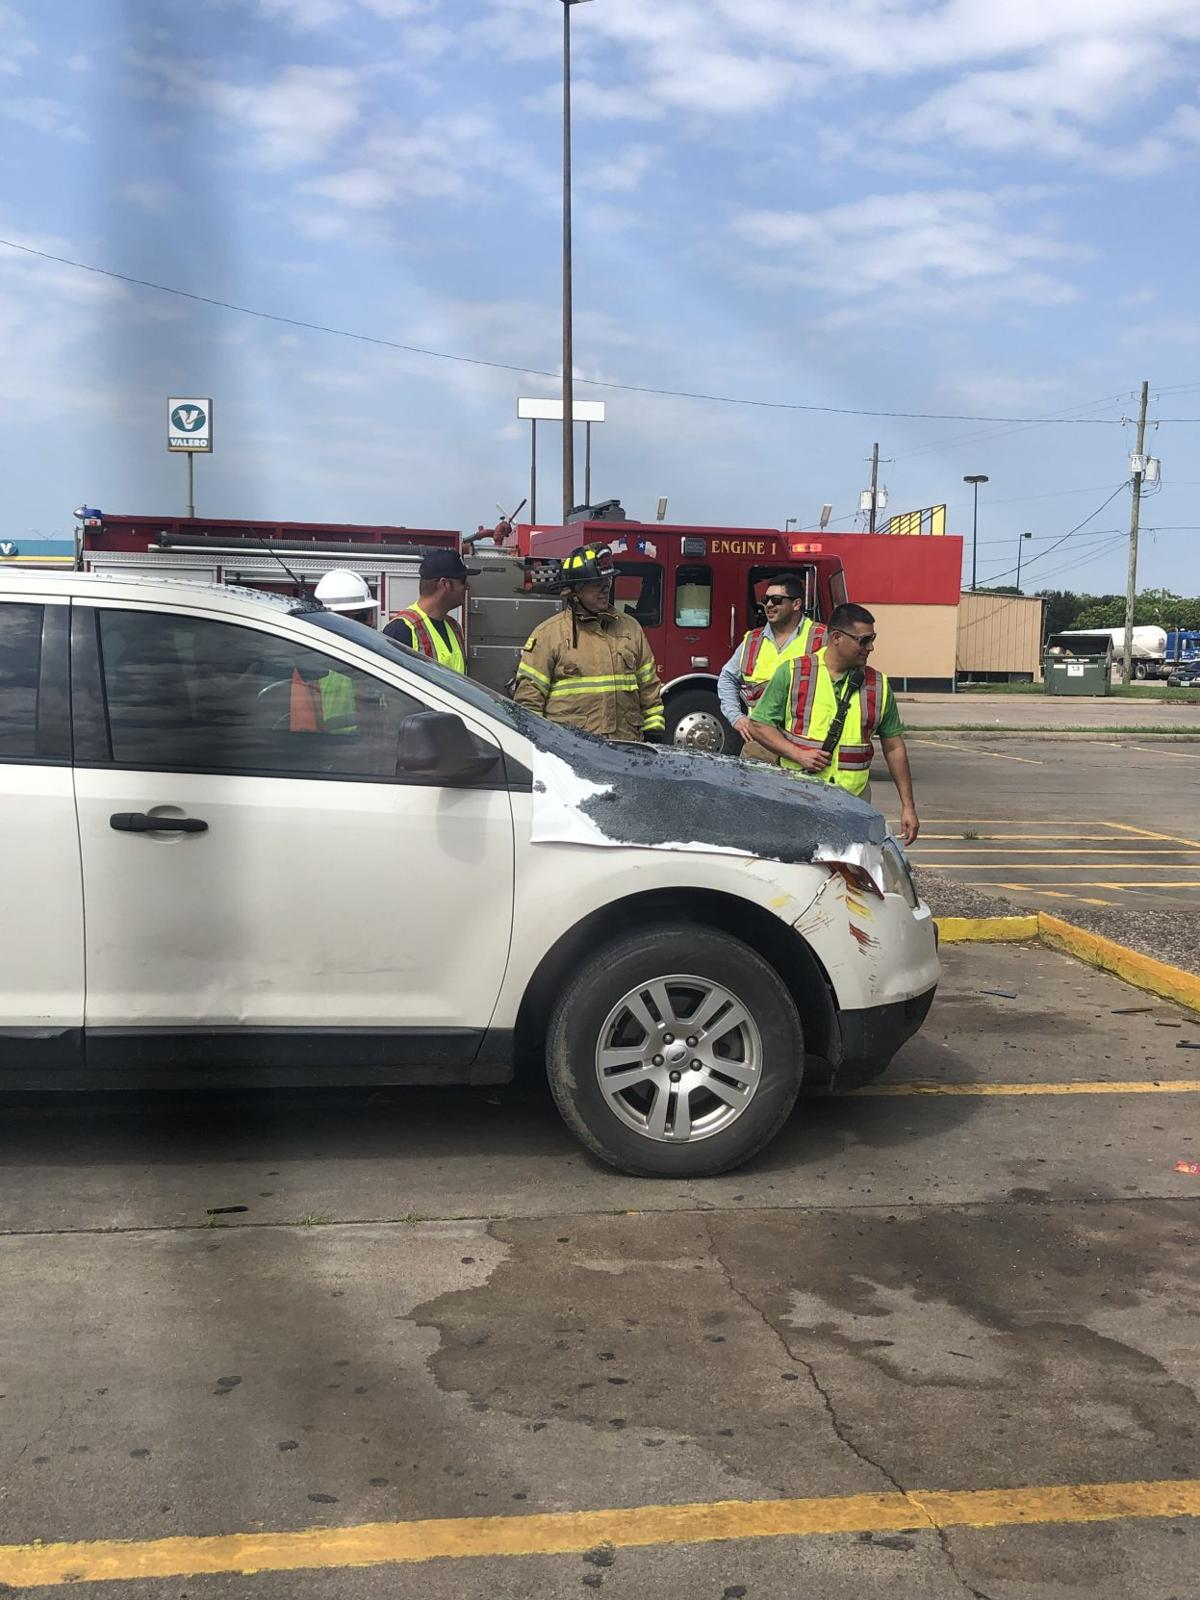 An SUV crashed into the Church's Chicken in Edna